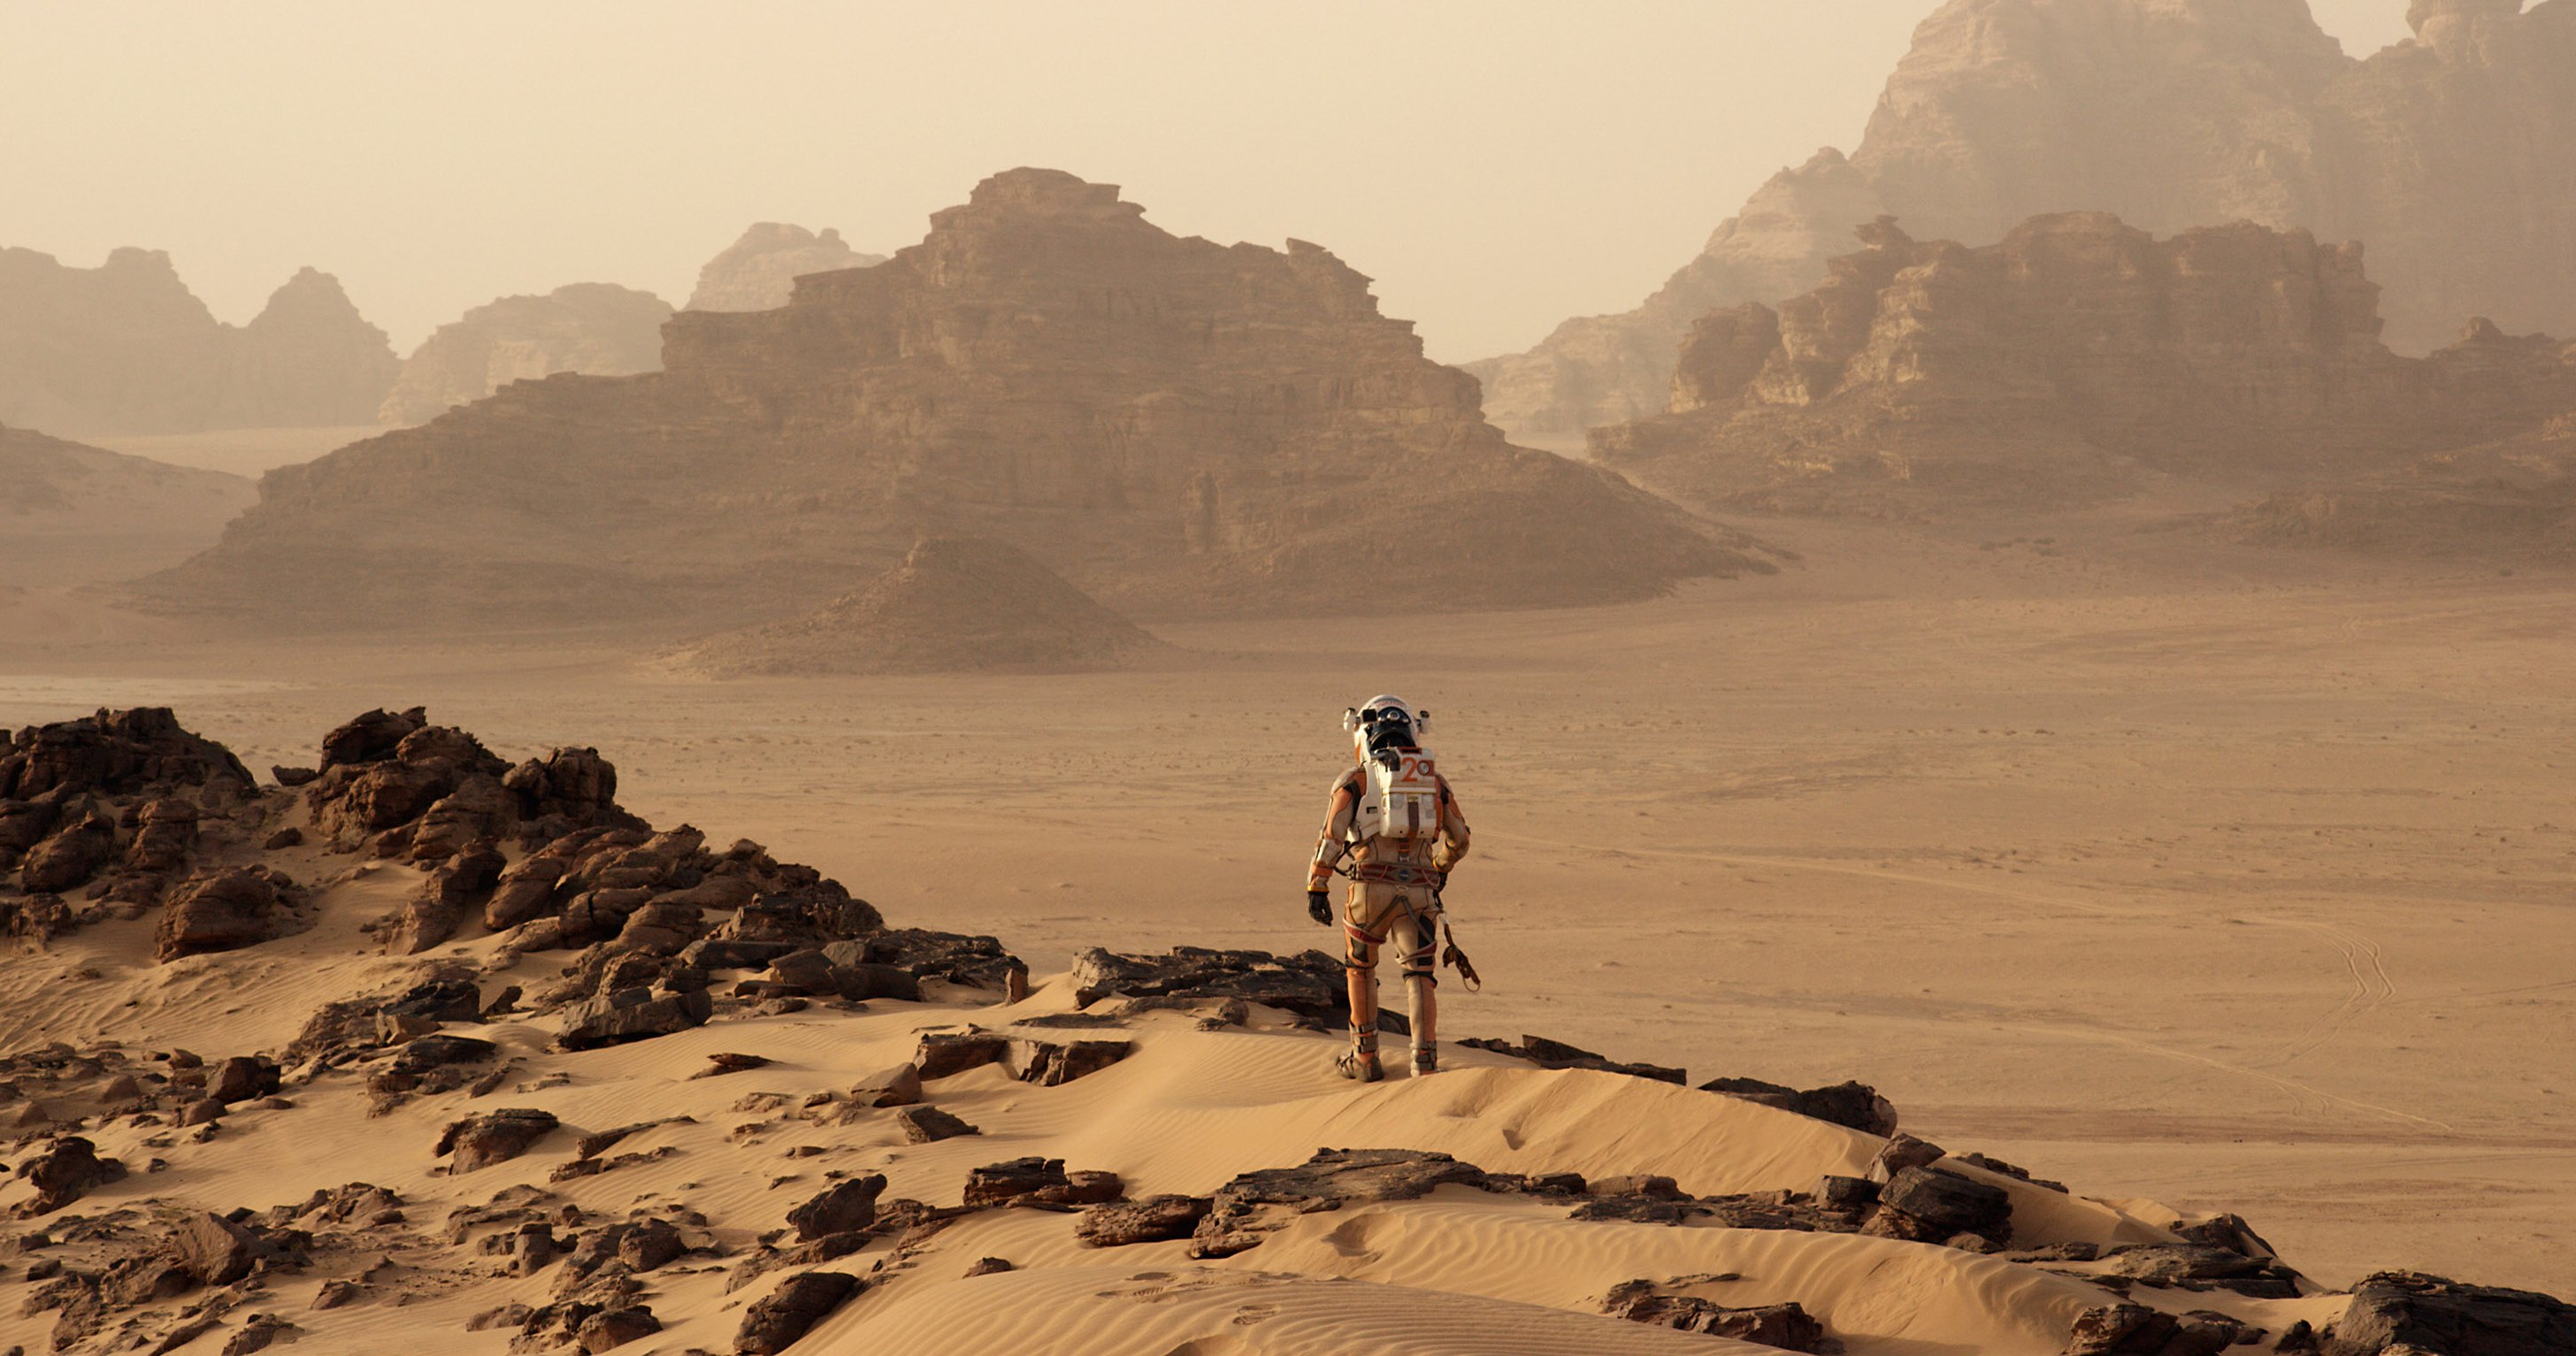 The Martian Pictures